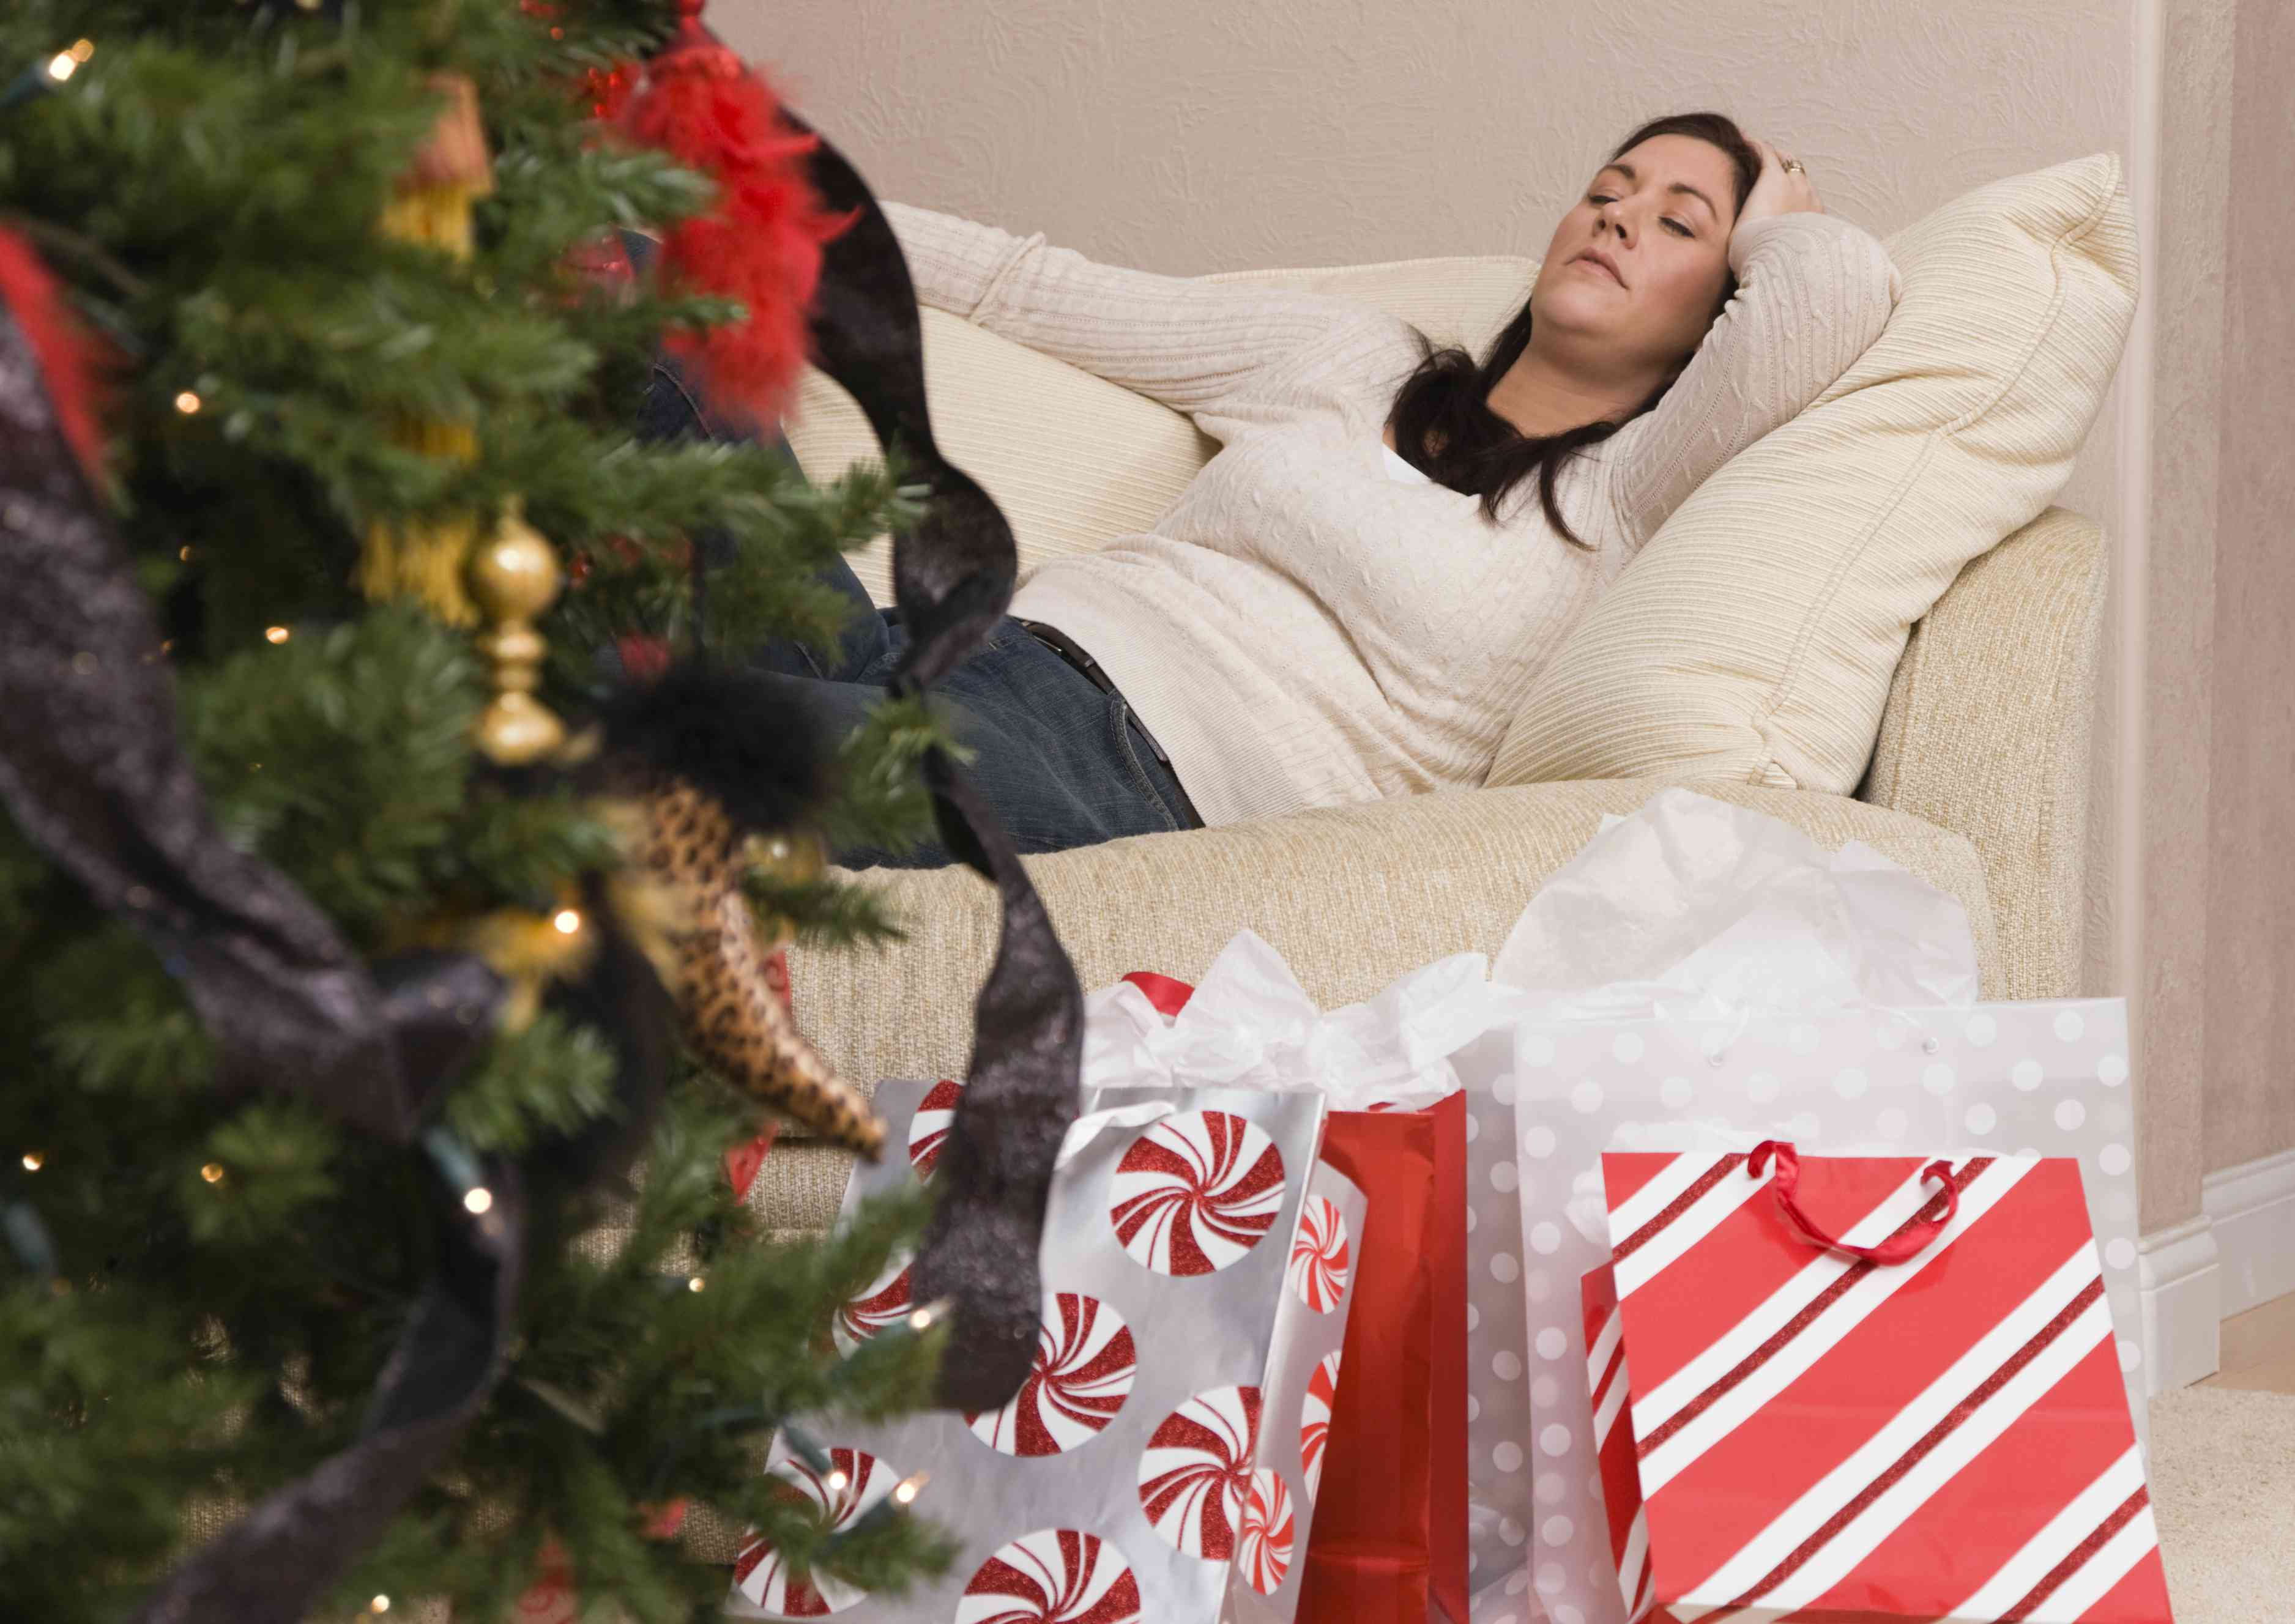 A woman napping near her Christmas tree